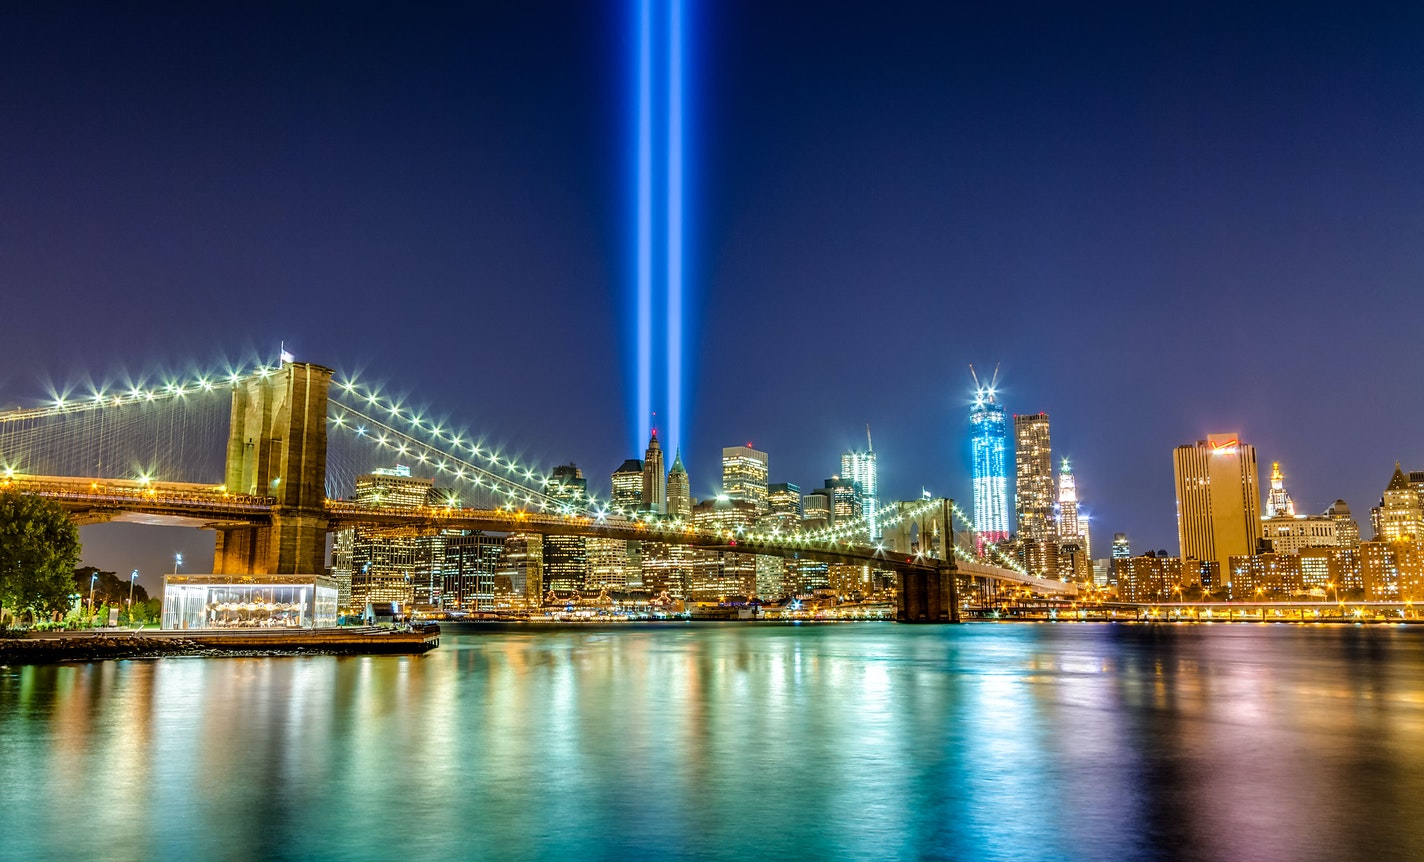 Remembering 9/11: A Life Story Workshop